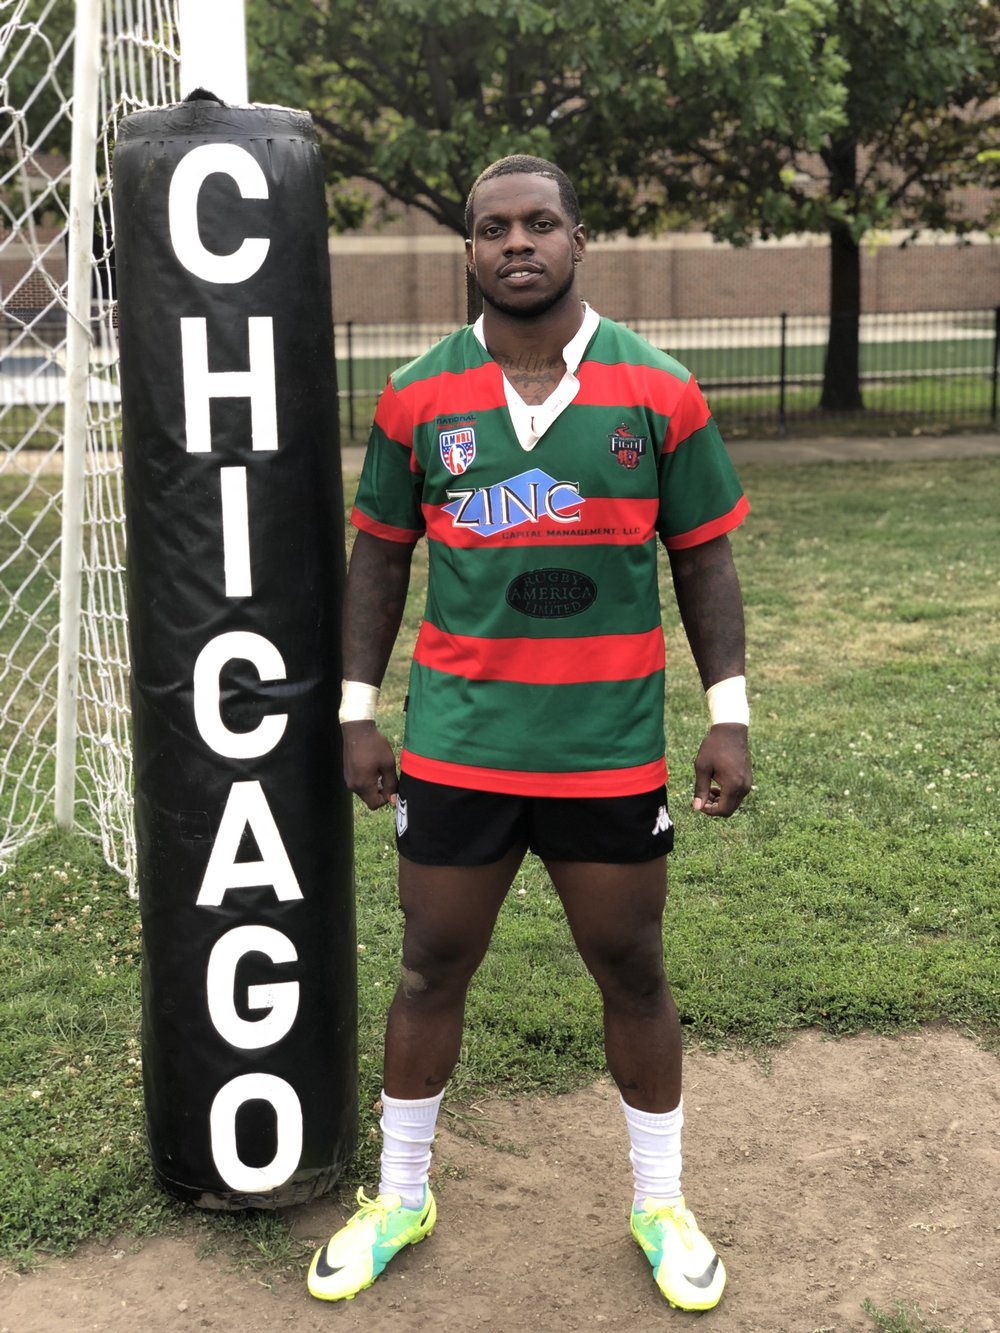 Gaddis is heavily involved in Rugby League at grassroots level.